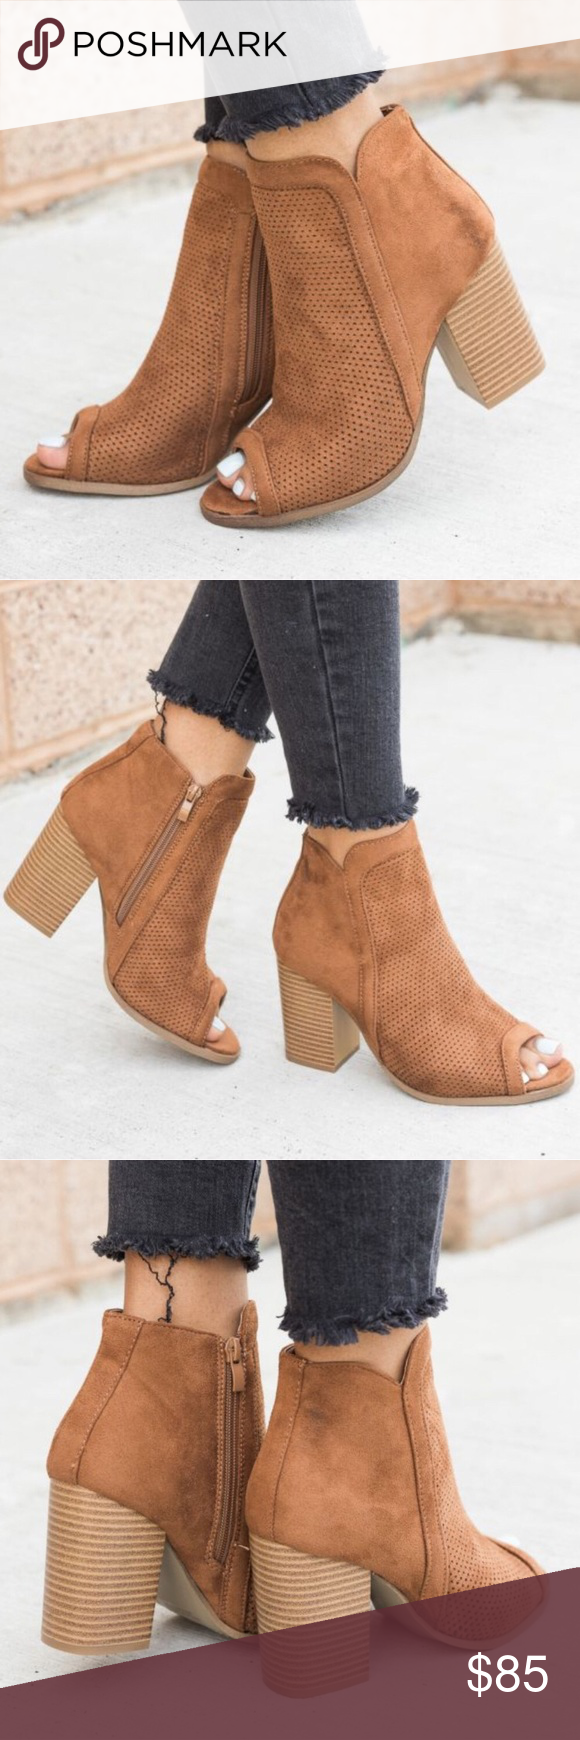 🎈LAST DAY SALE. Peep toe bootie | Ankle boots and Ankle